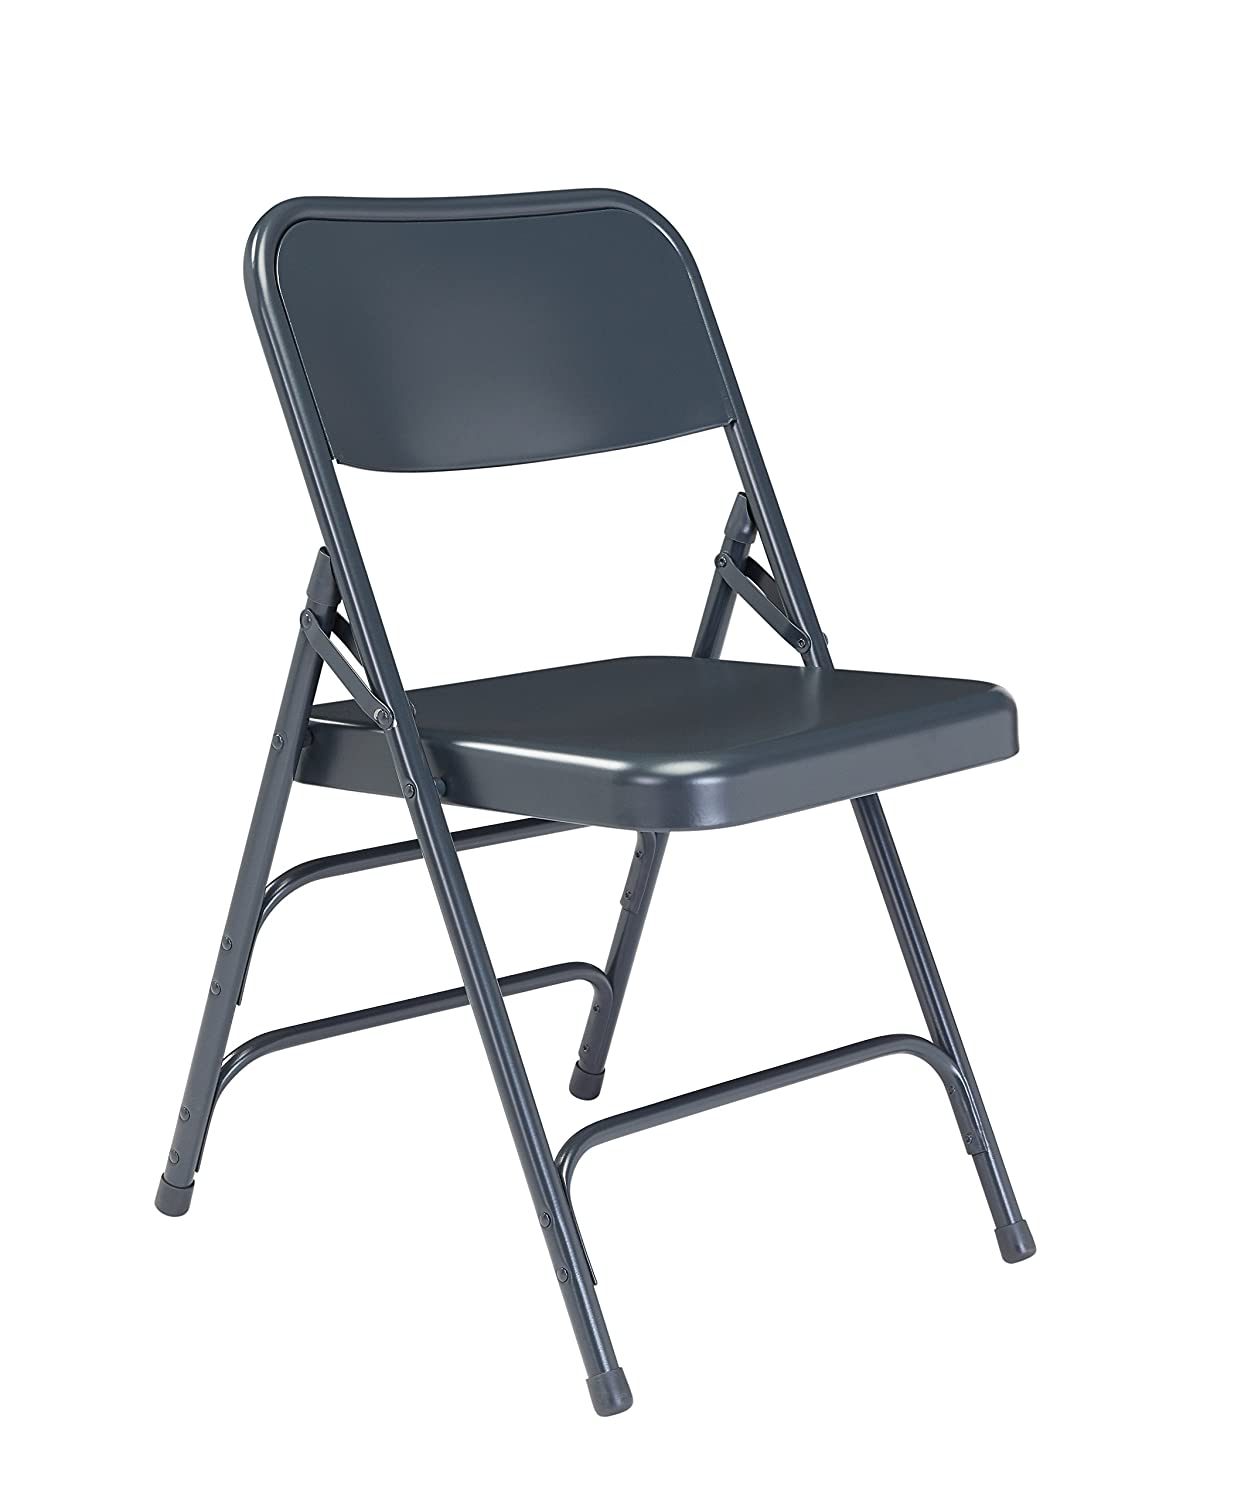 National Public Seating 300 Series All Steel Premium Folding Chair with Triple Brace, 480-Pound Capacity, Brown, Carton of 4 303